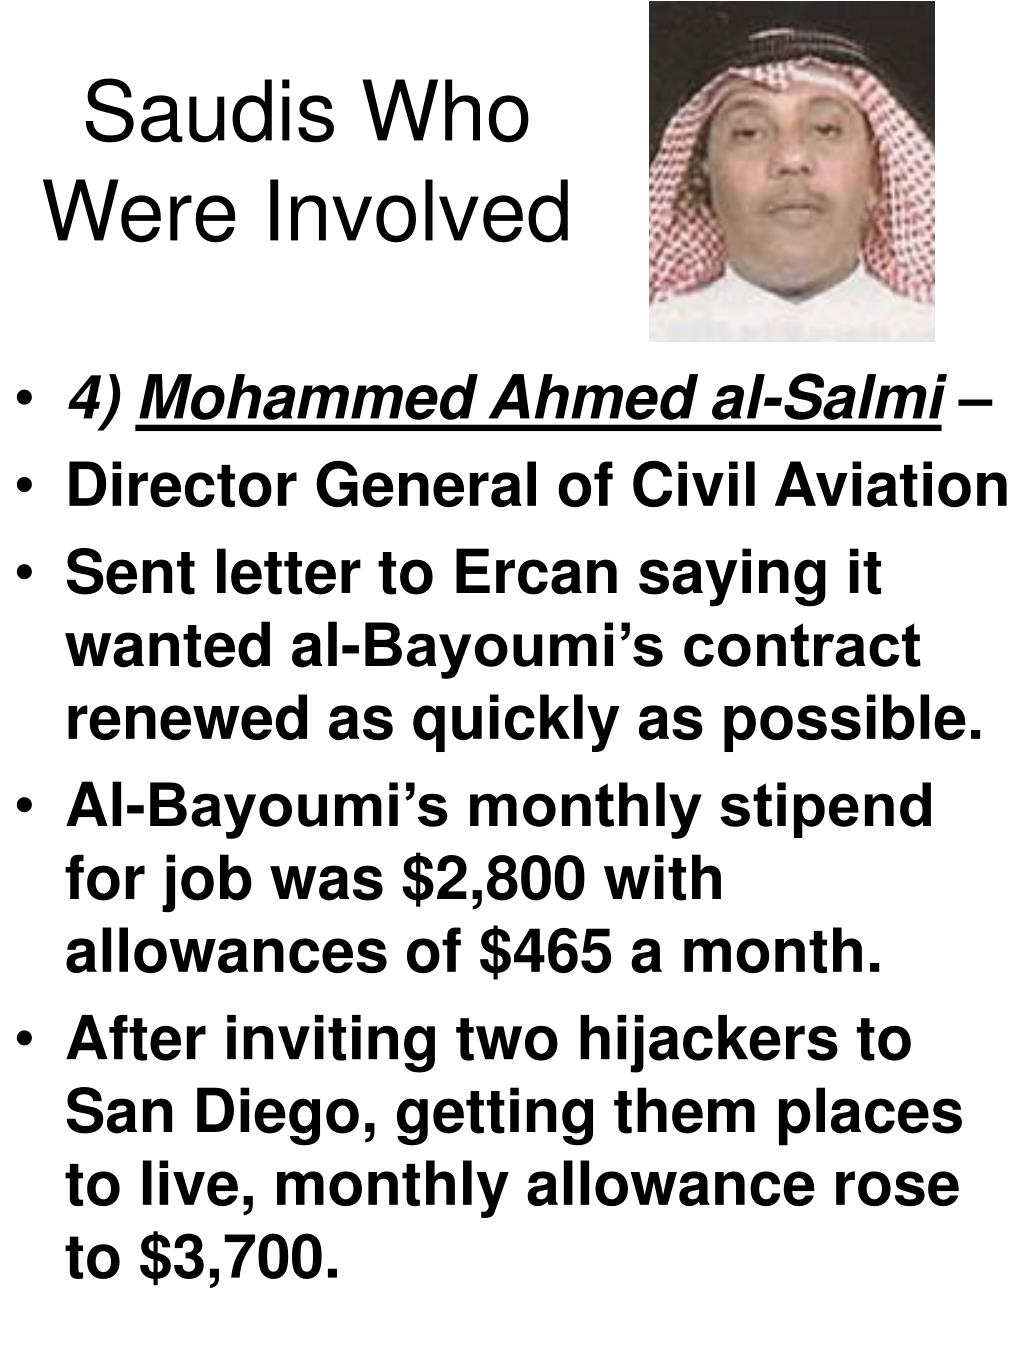 Saudis Who Were Involved